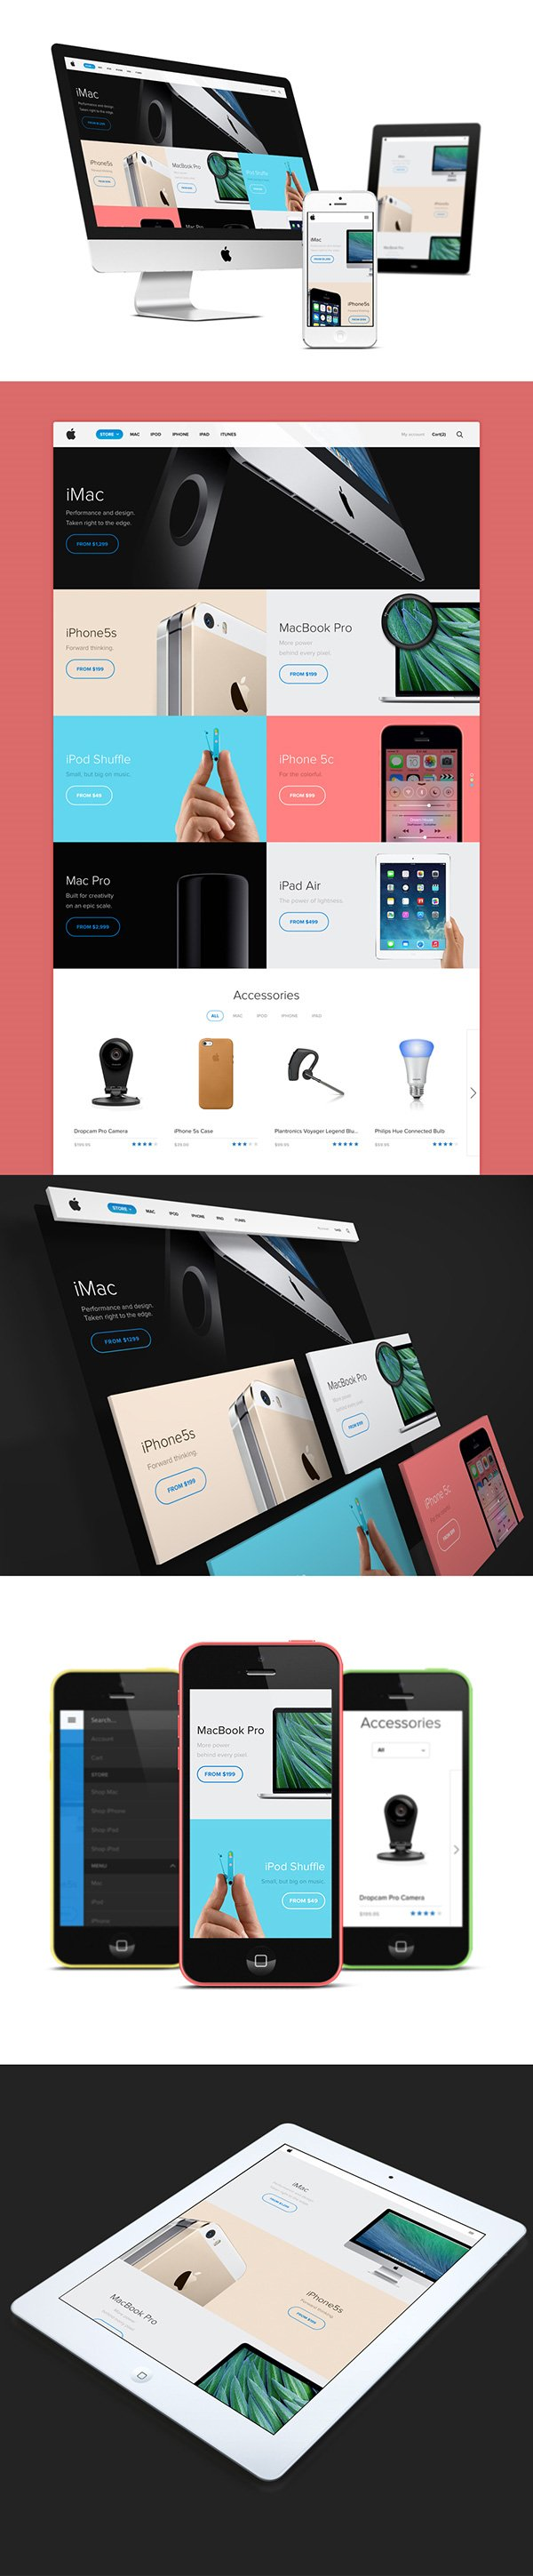 Apple Store Redesign